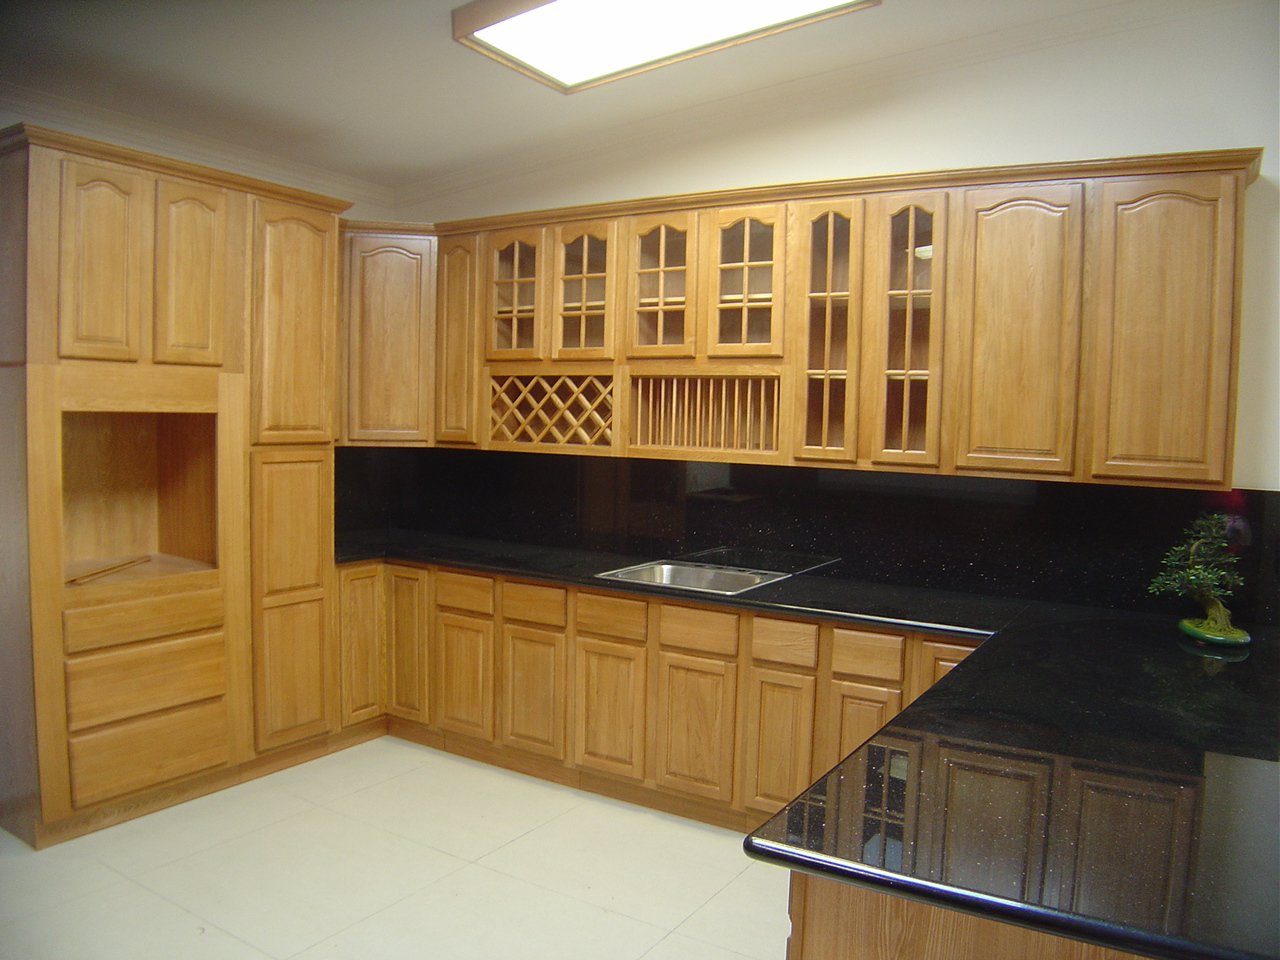 Kitchen Cabinets Design | 1280 x 960 · 557 kB · jpeg | 1280 x 960 · 557 kB · jpeg